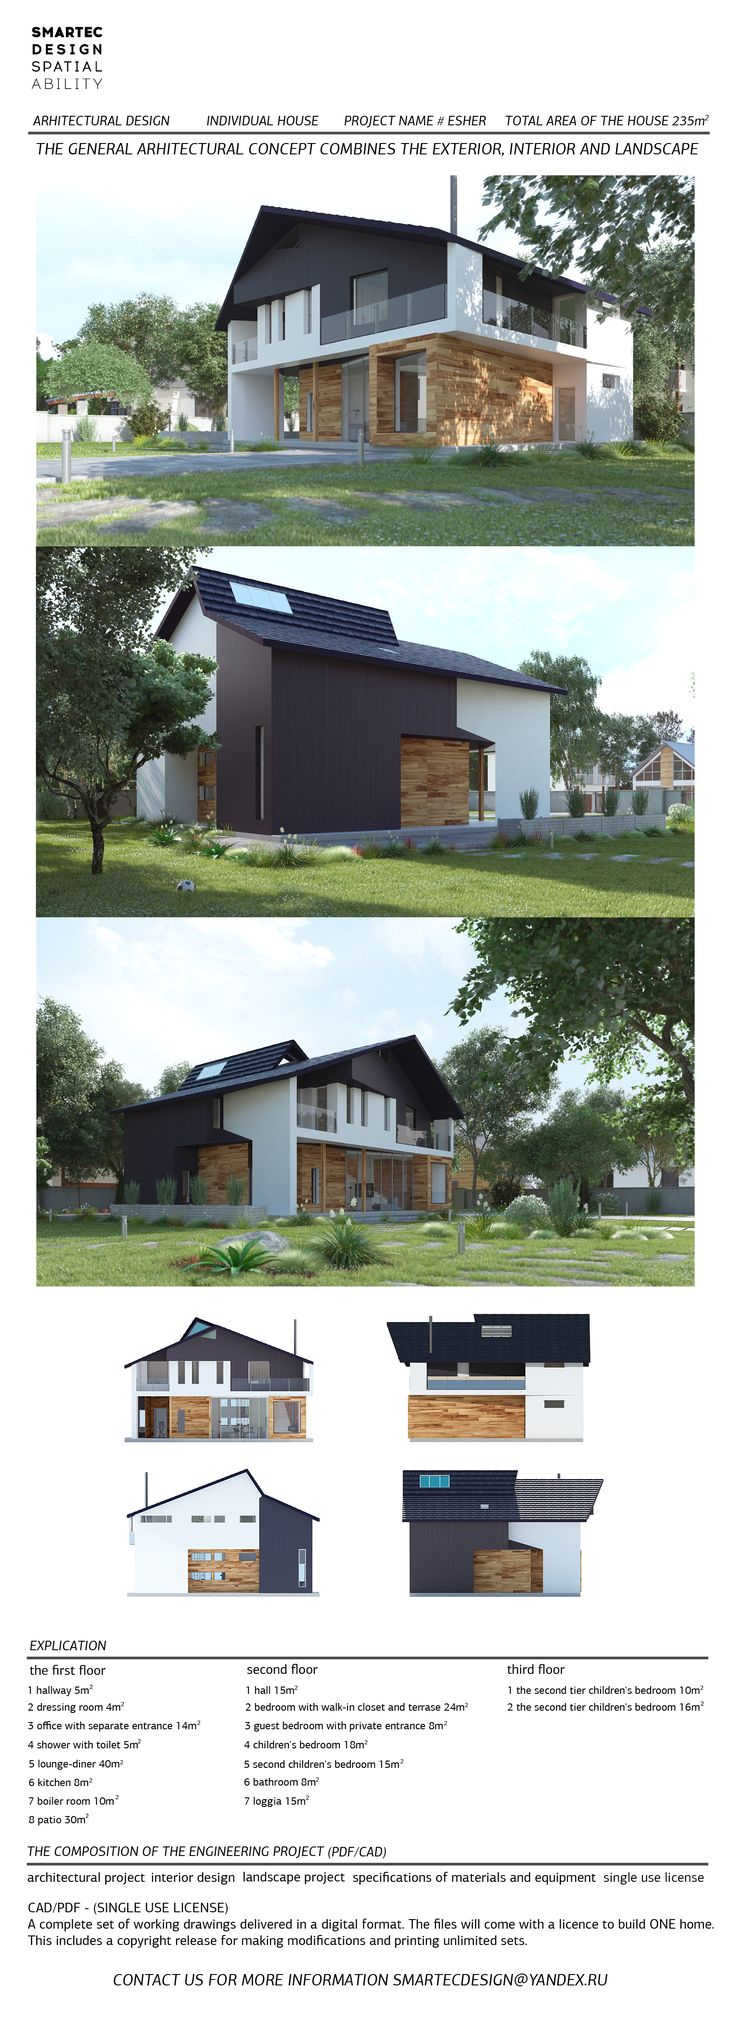 Esherthe general architectural concept combines the exterior interior and